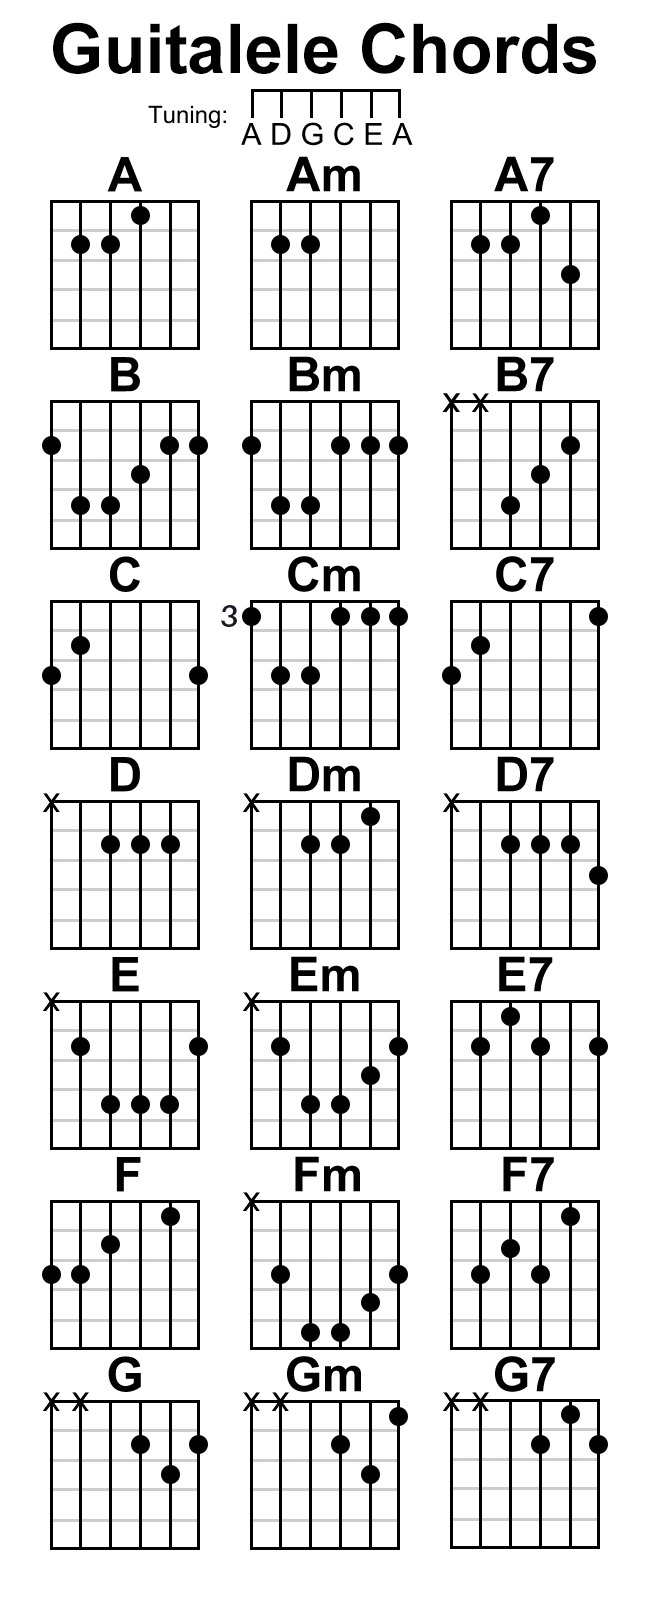 Guitalele chord chart by stijnart on deviantart guitalele chord chart by stijnart guitalele chord chart by stijnart hexwebz Gallery